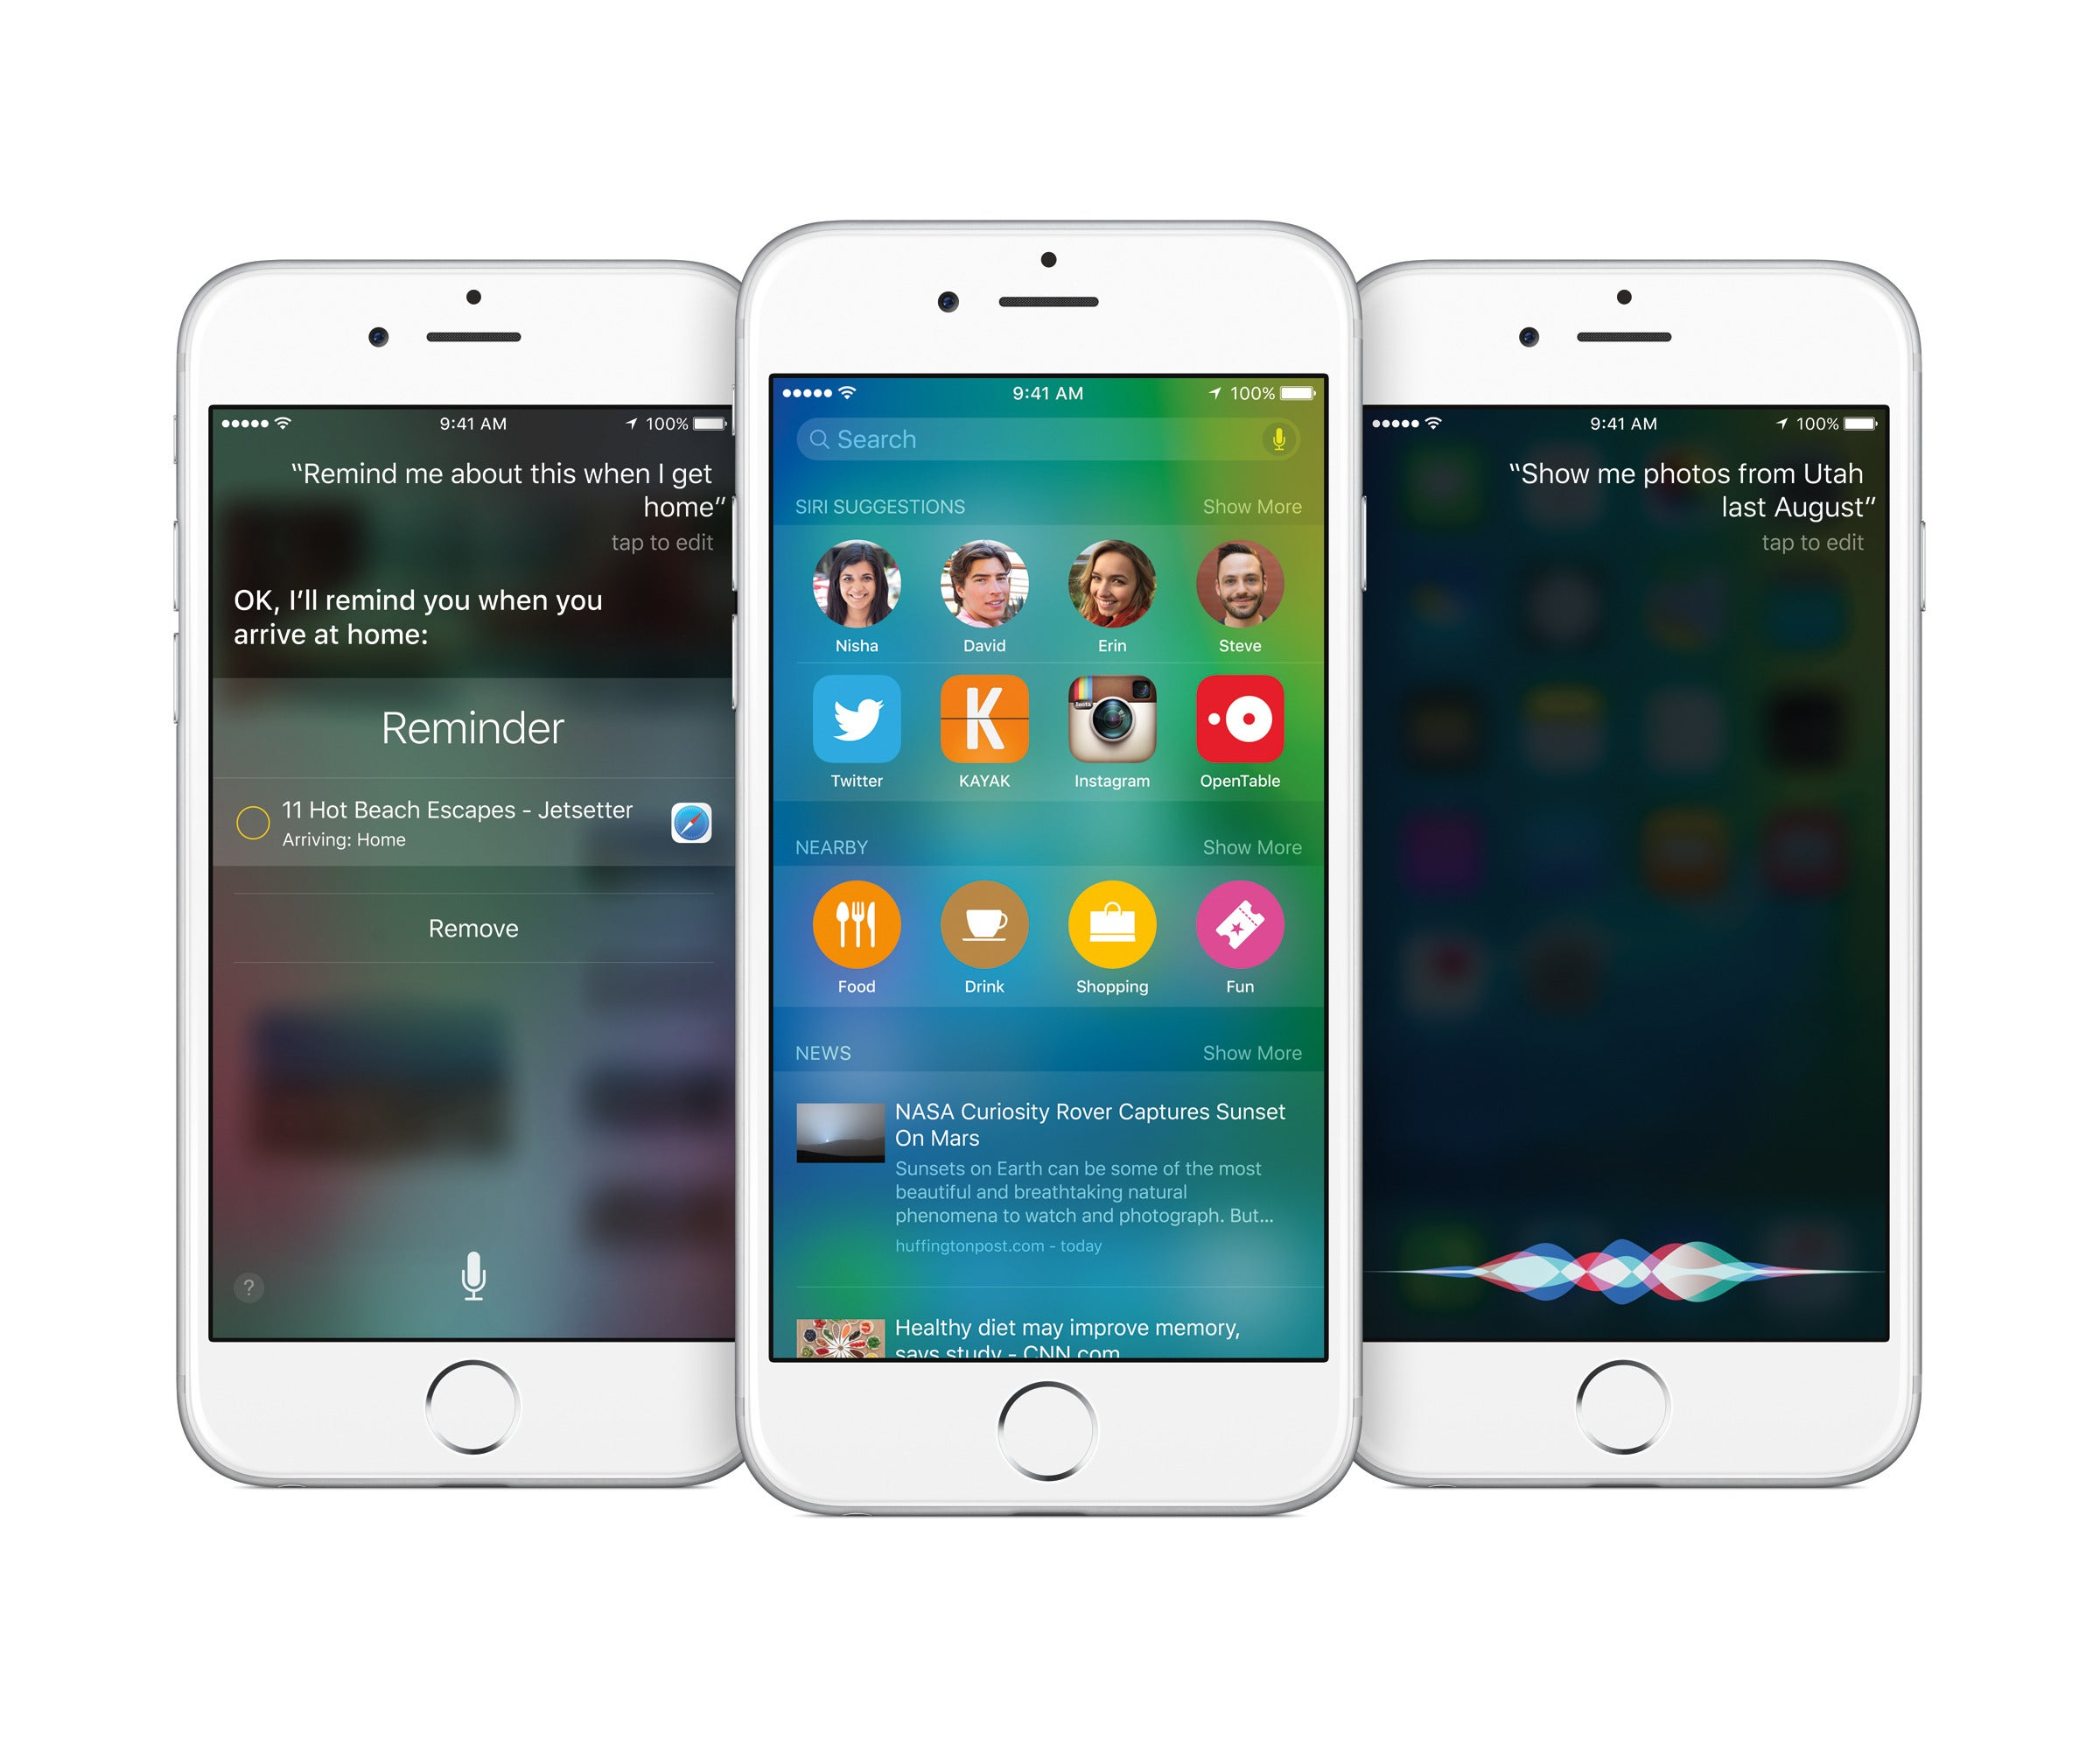 Hack iOS 9 and get $1 million, cyber security firm says